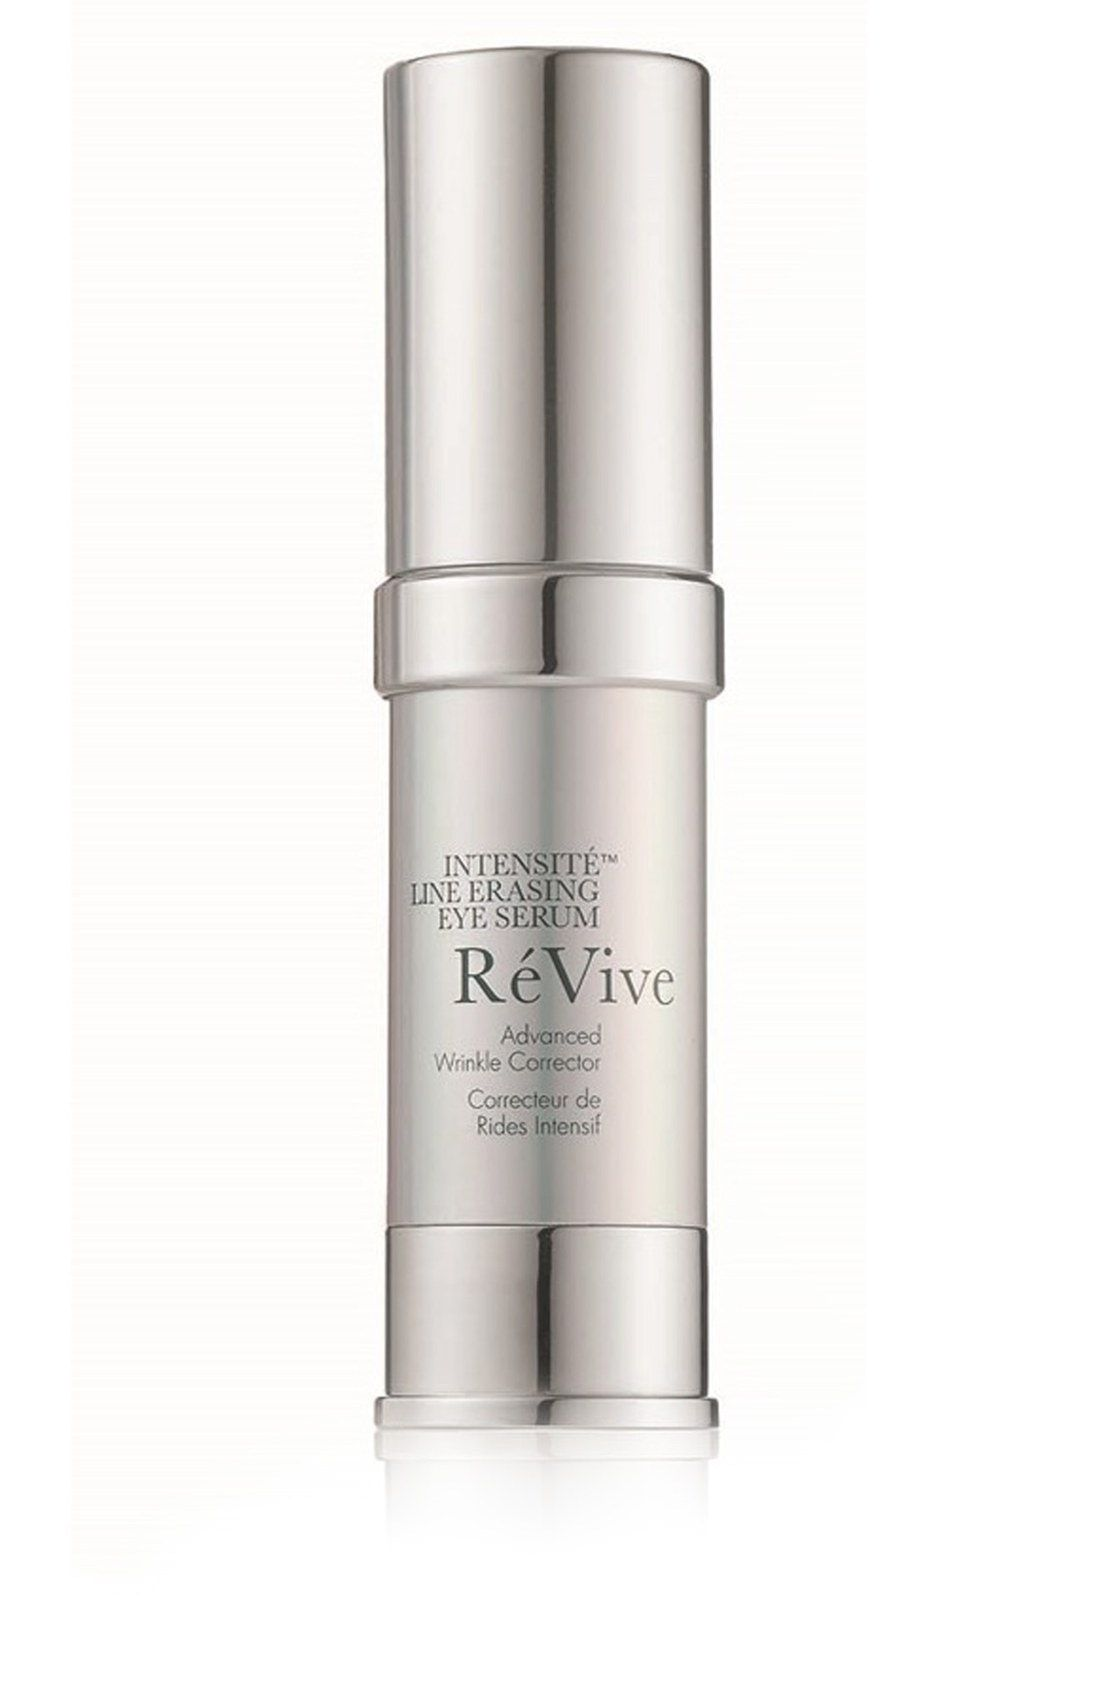 New ReVive Intensite Line Erasing Eye Serum fashion online. [$350]topshoppingonline top<<